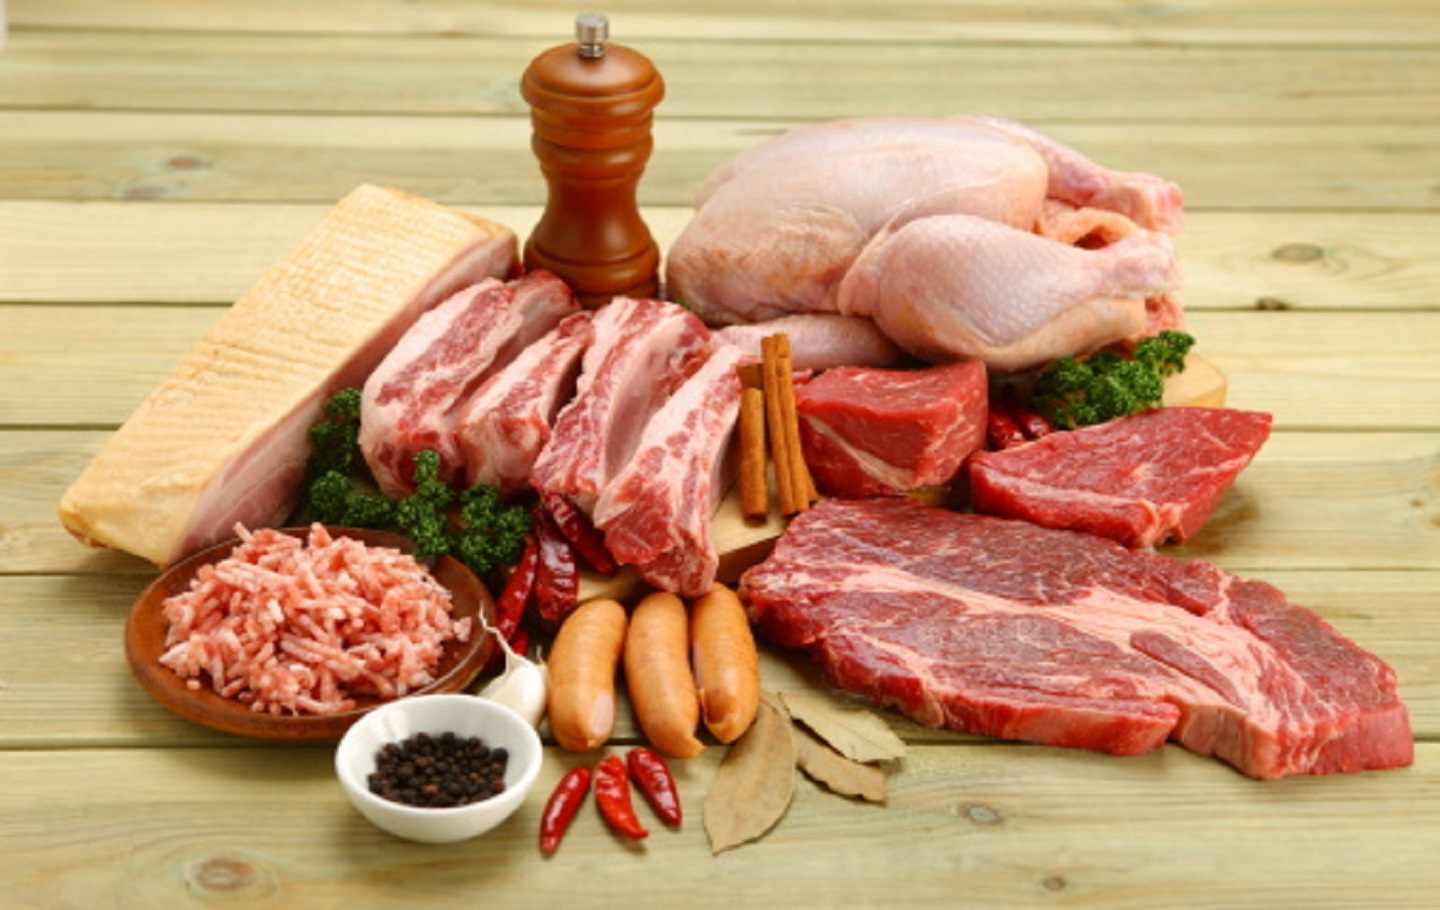 poultry meat We provide food producers, retailers and foodservice operators with wholesome meat and poultry products all around the globe.